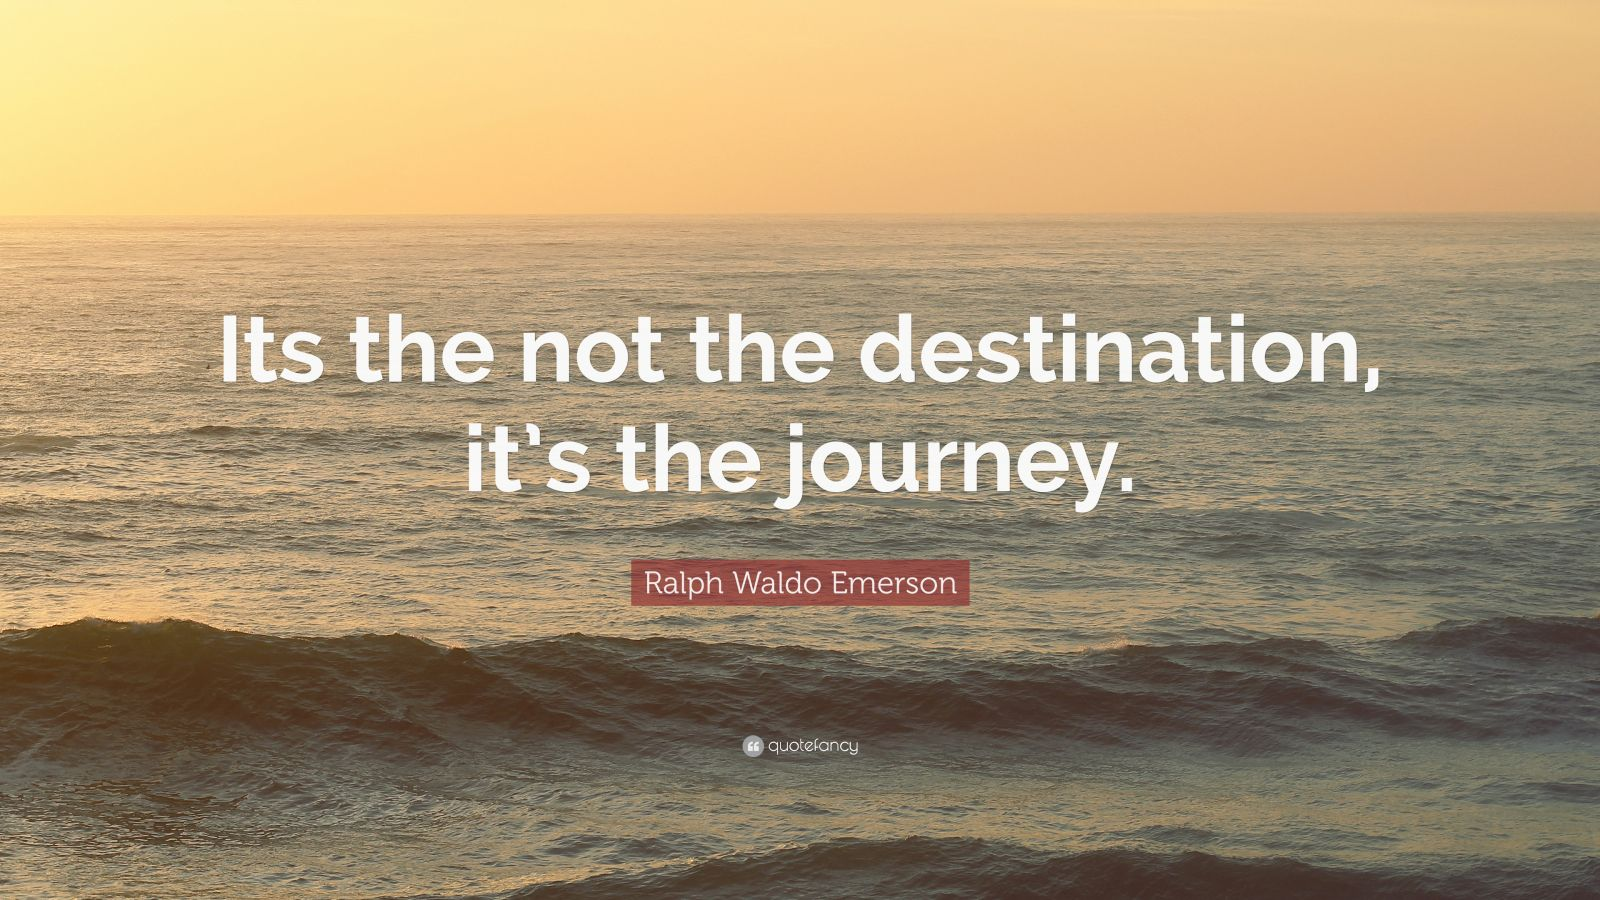 """Ralph Waldo Emerson Quote: """"Its the not the destination, it's the journey."""""""